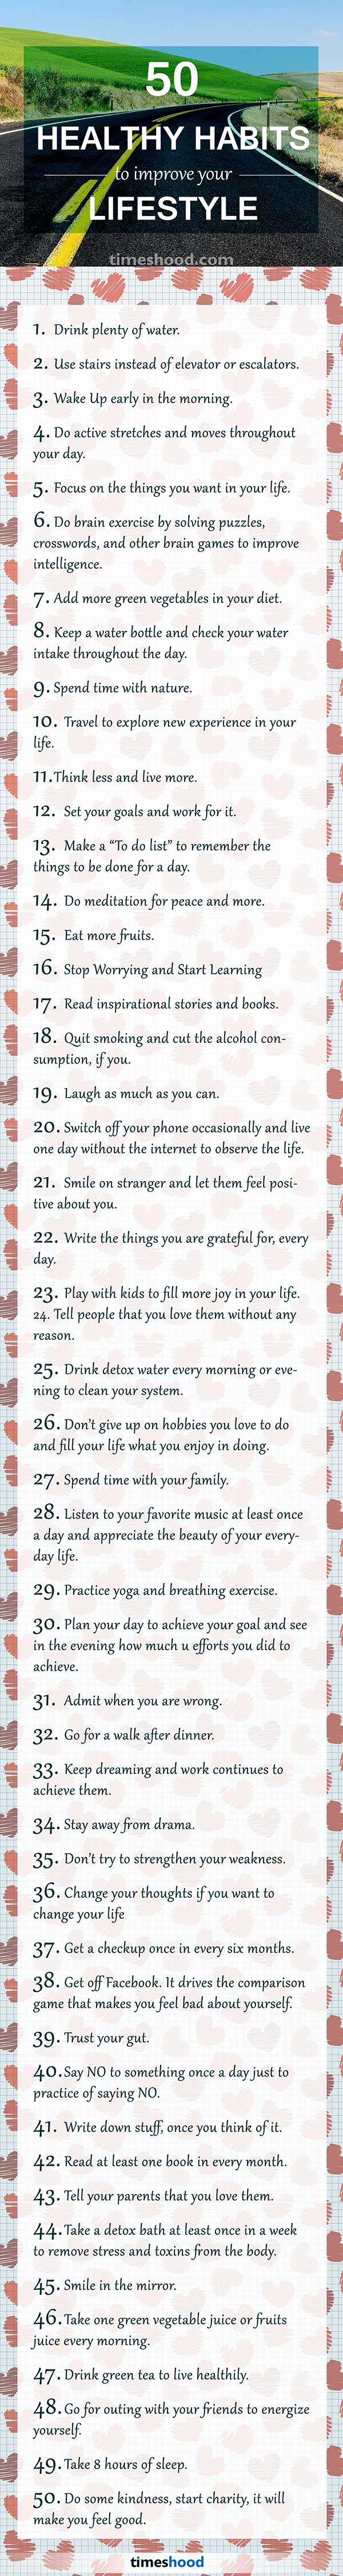 50 healthy habits to improve your lifestyle